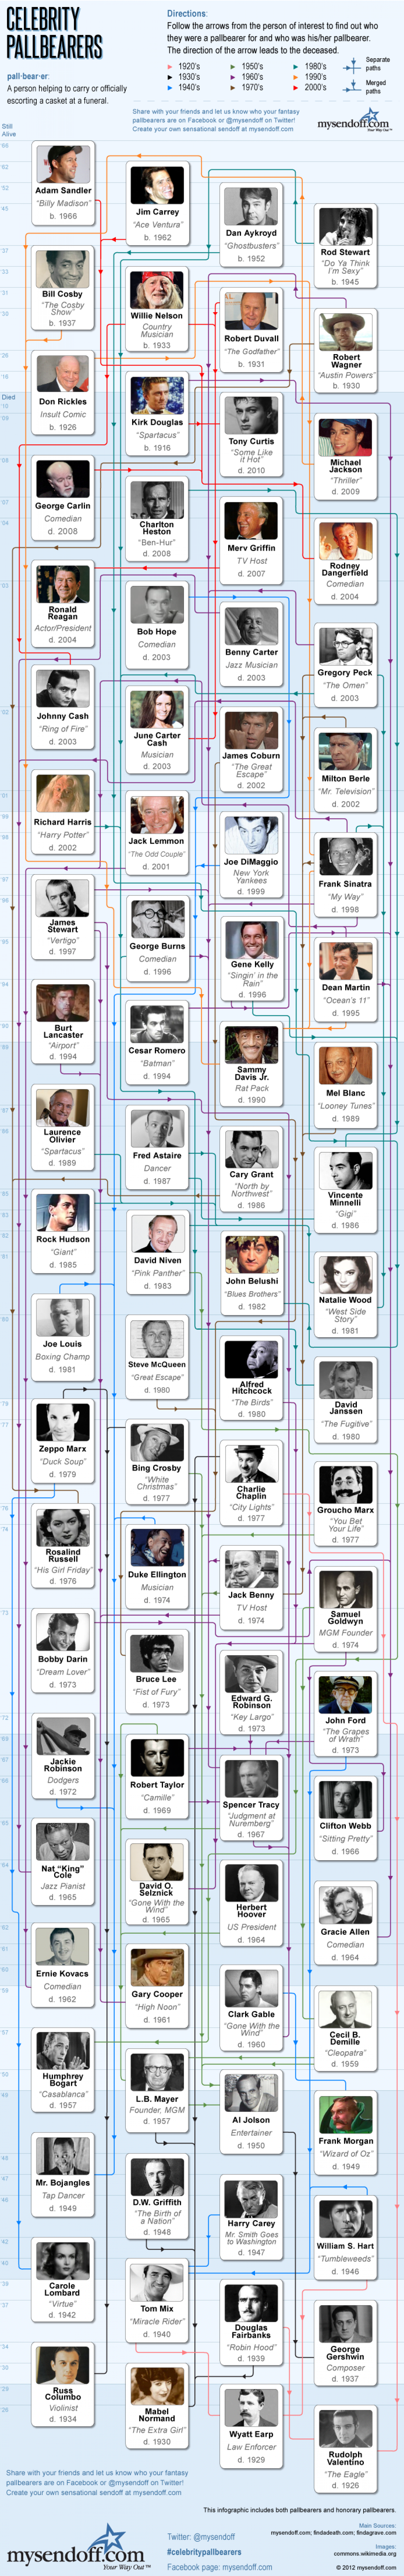 Celebrity Pallbearers Infographic